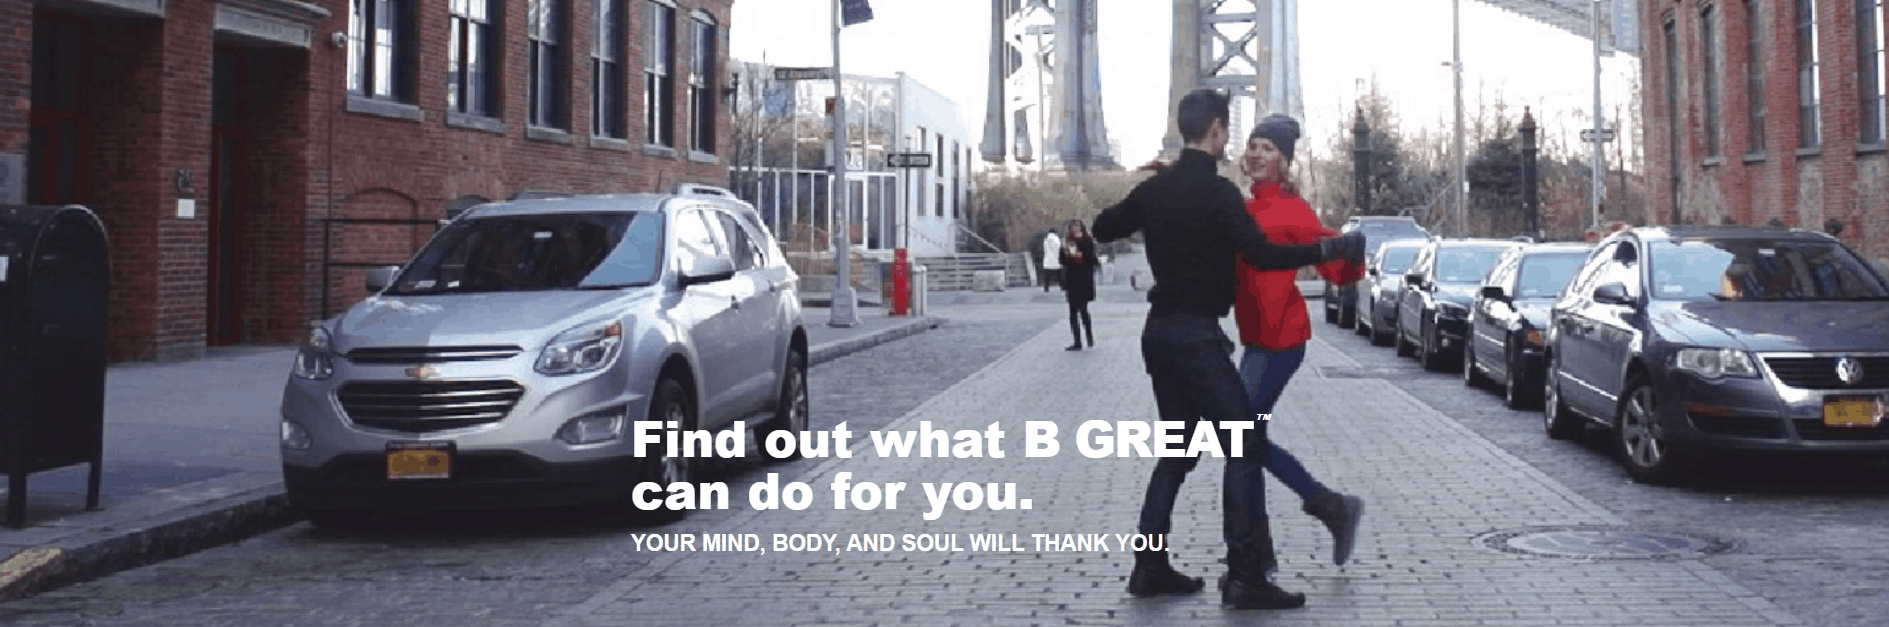 B Great CBD Coupons Care For You